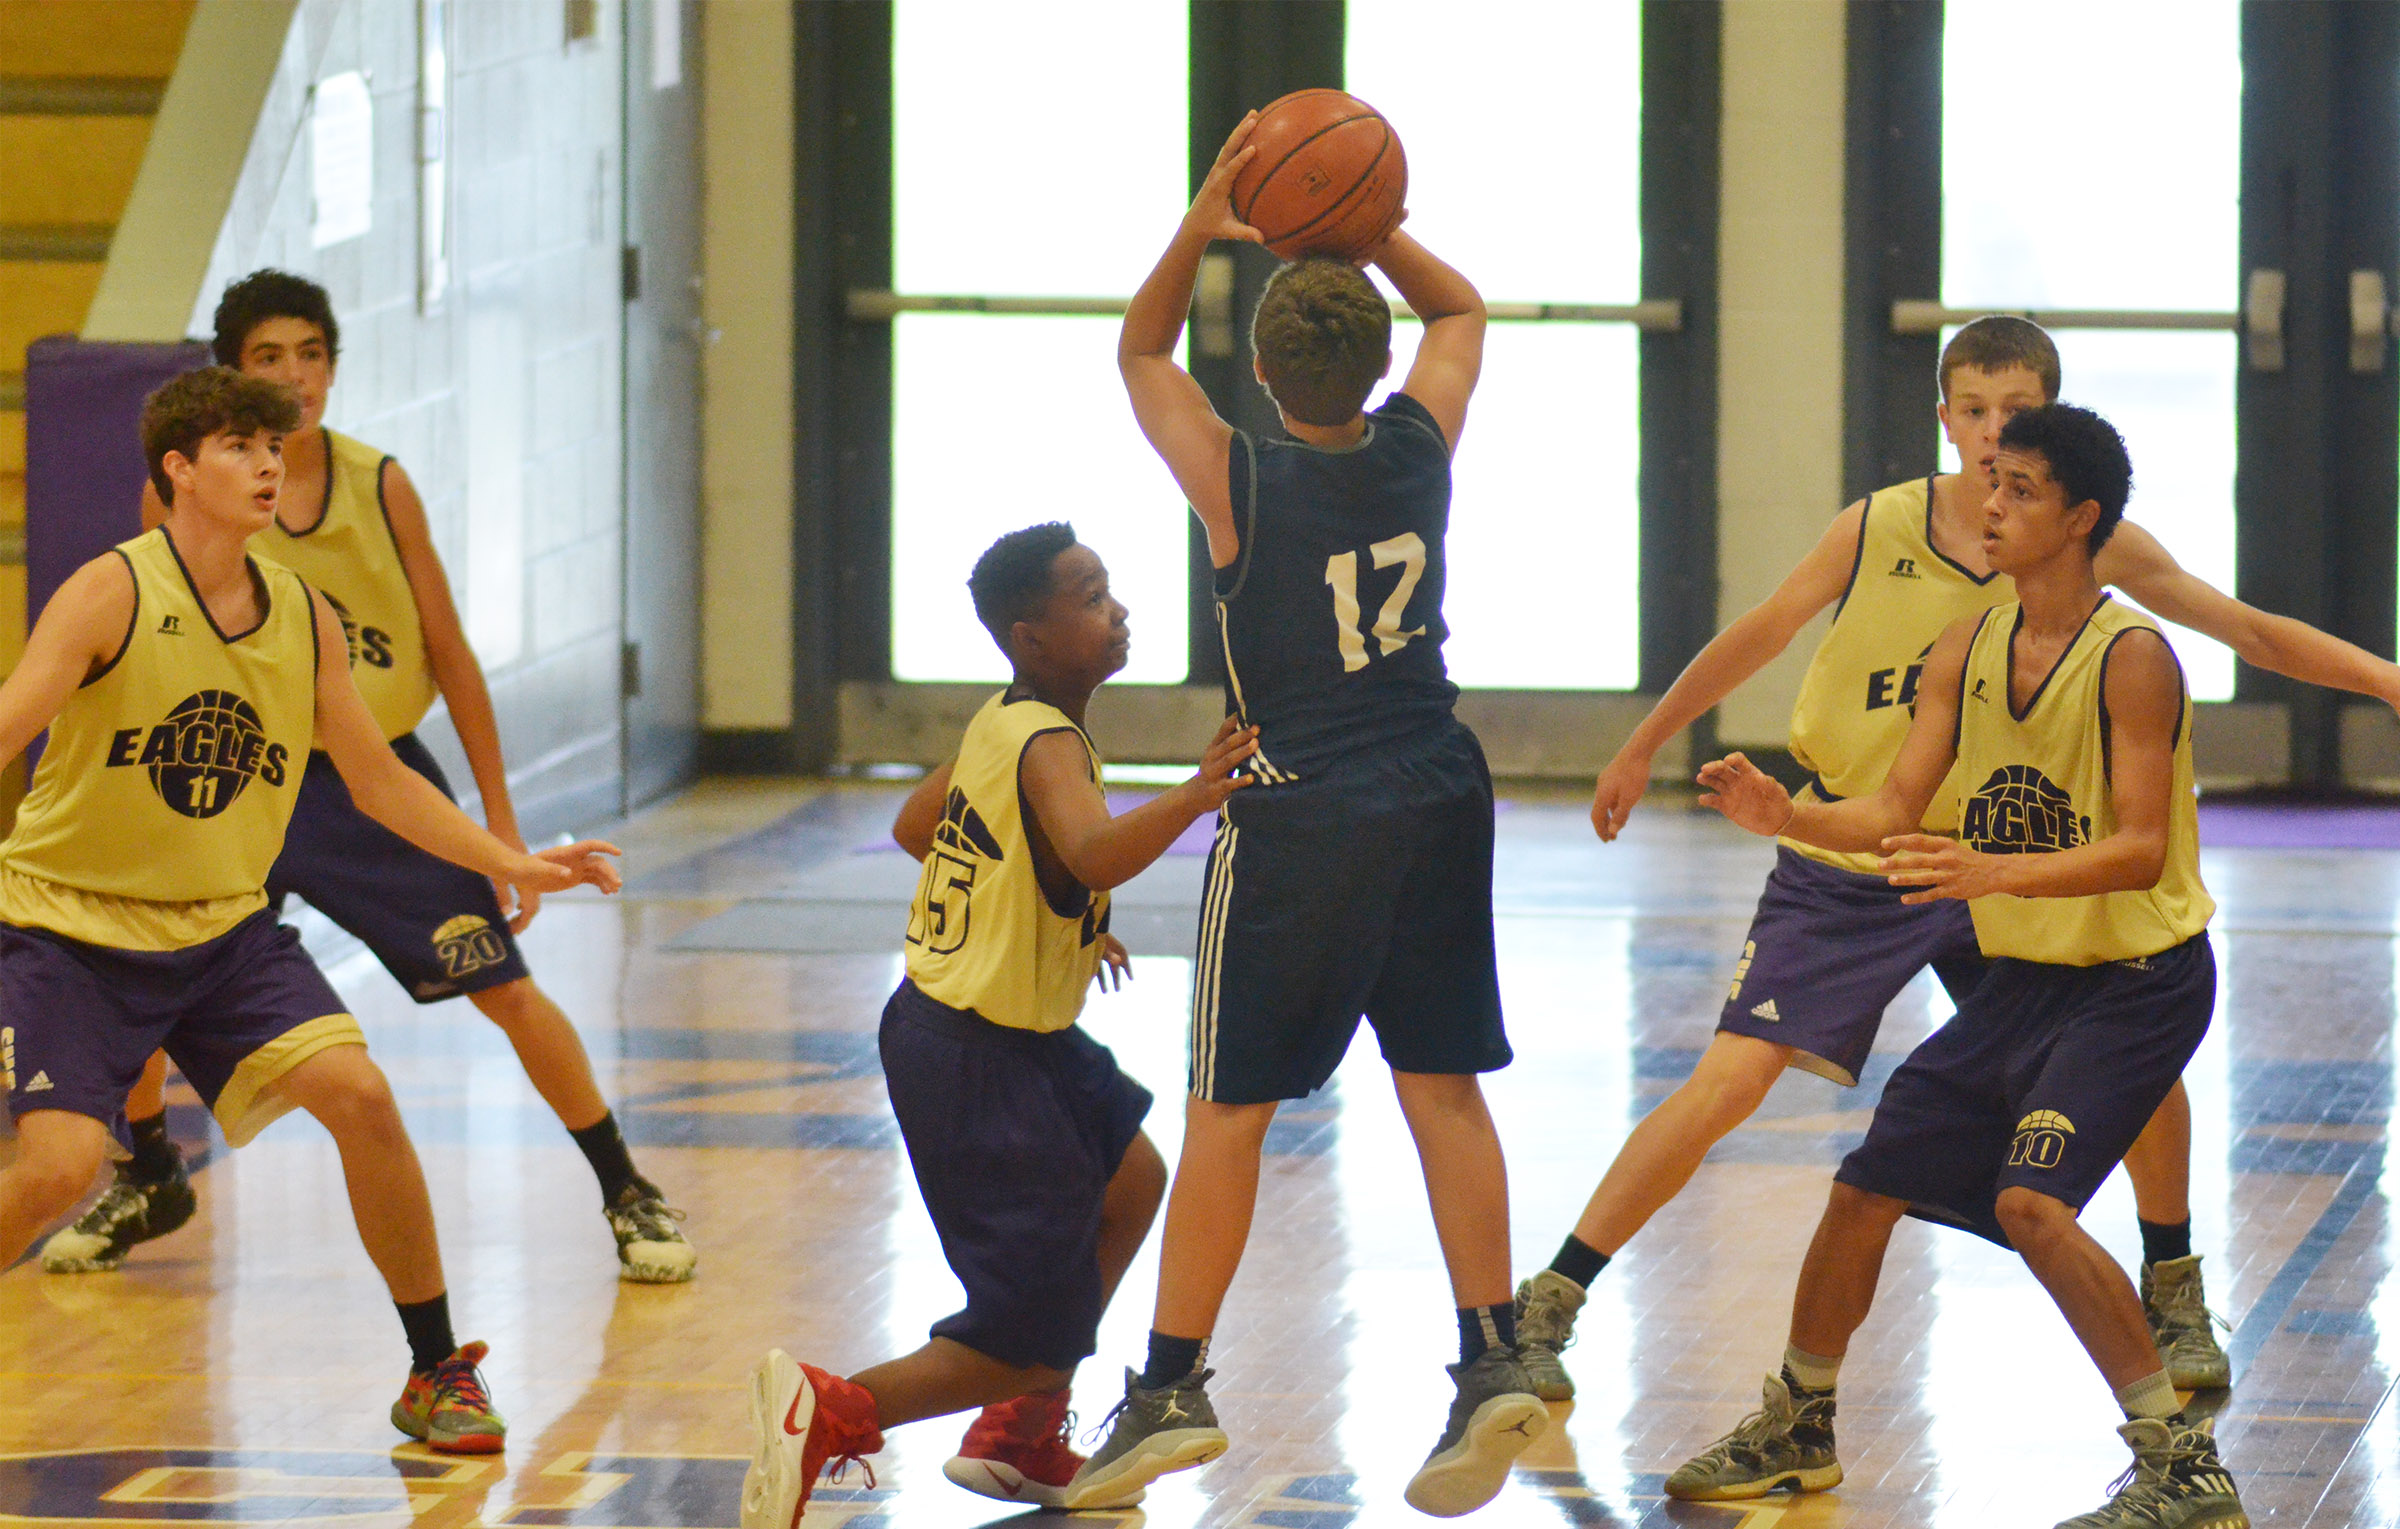 CHS players, from left, sophomore Mark Rigsby, freshman Kameron Smith, sixth-grader Deondre Weathers and sophomores Noah Hughes and Mikael Vaught play defense.